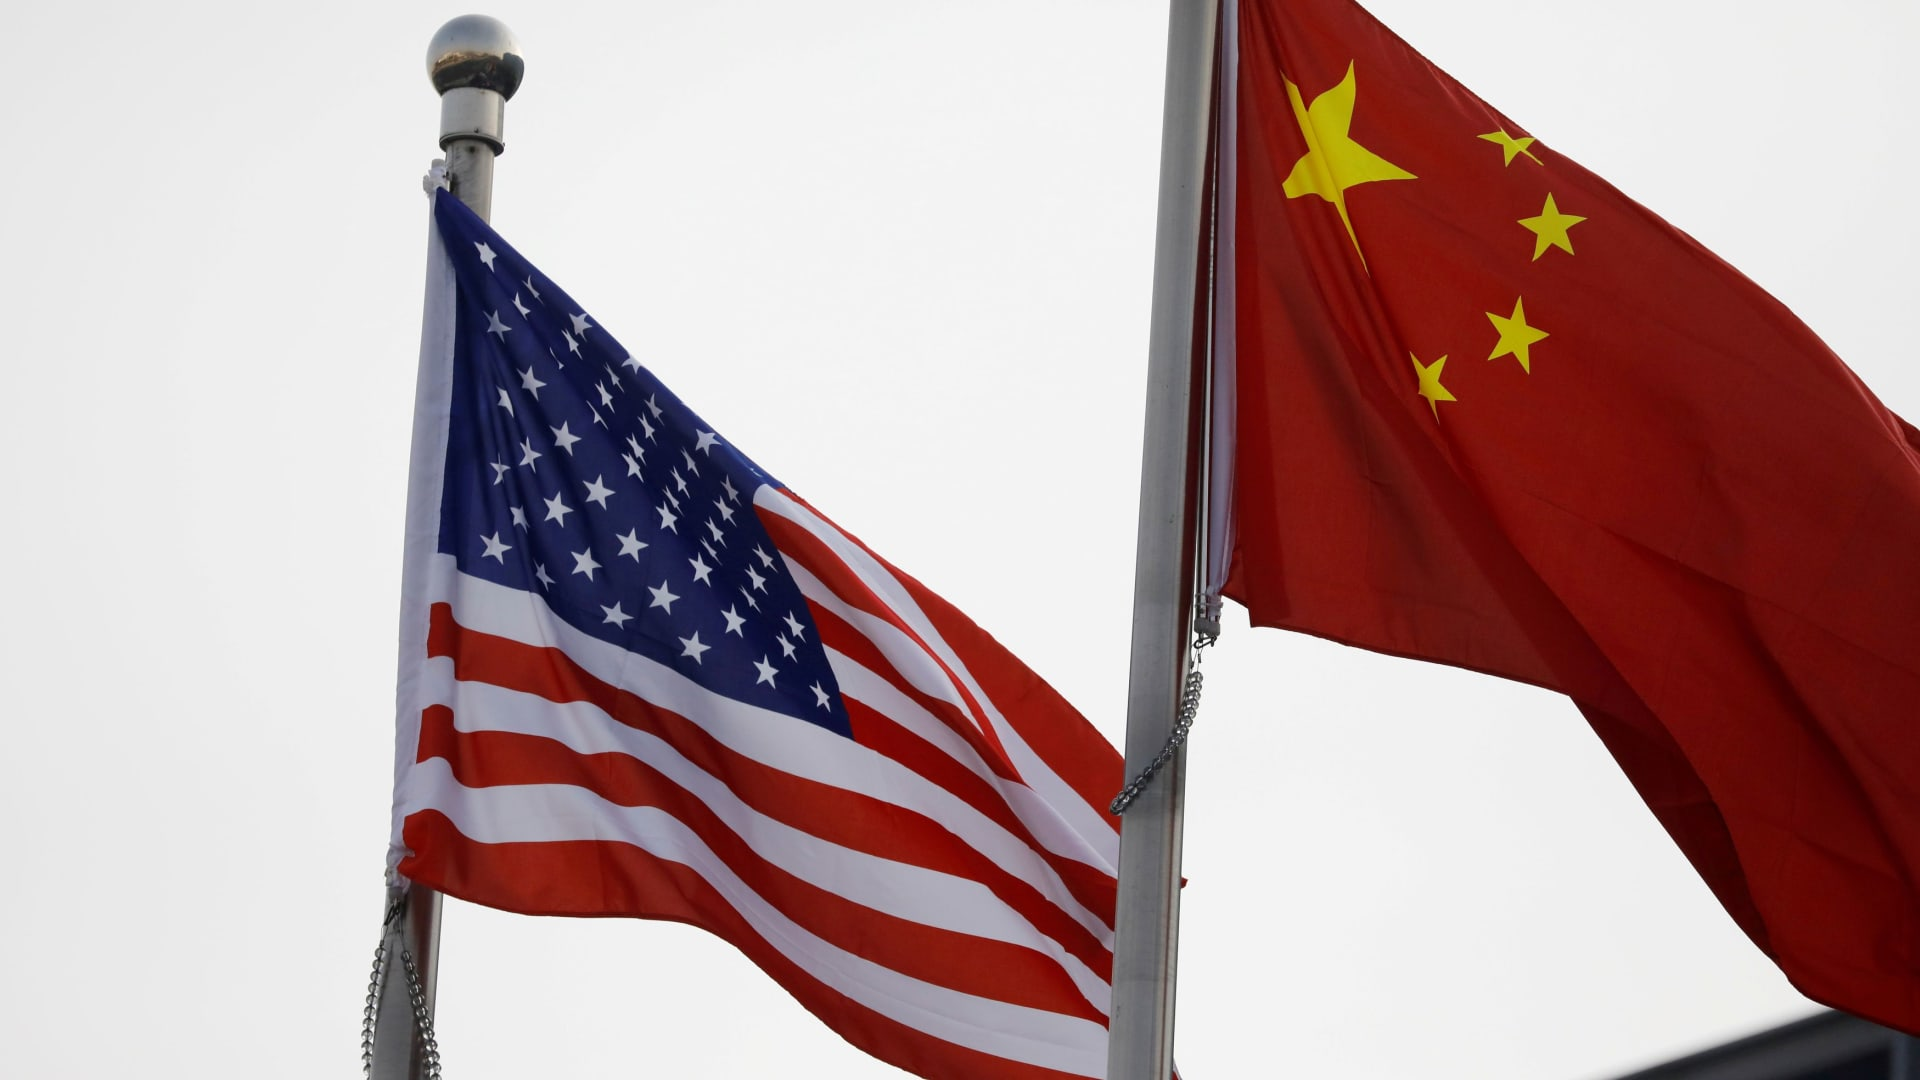 Chinese and U.S. flags outside the building of an American company in Beijing, China January 21, 2021.